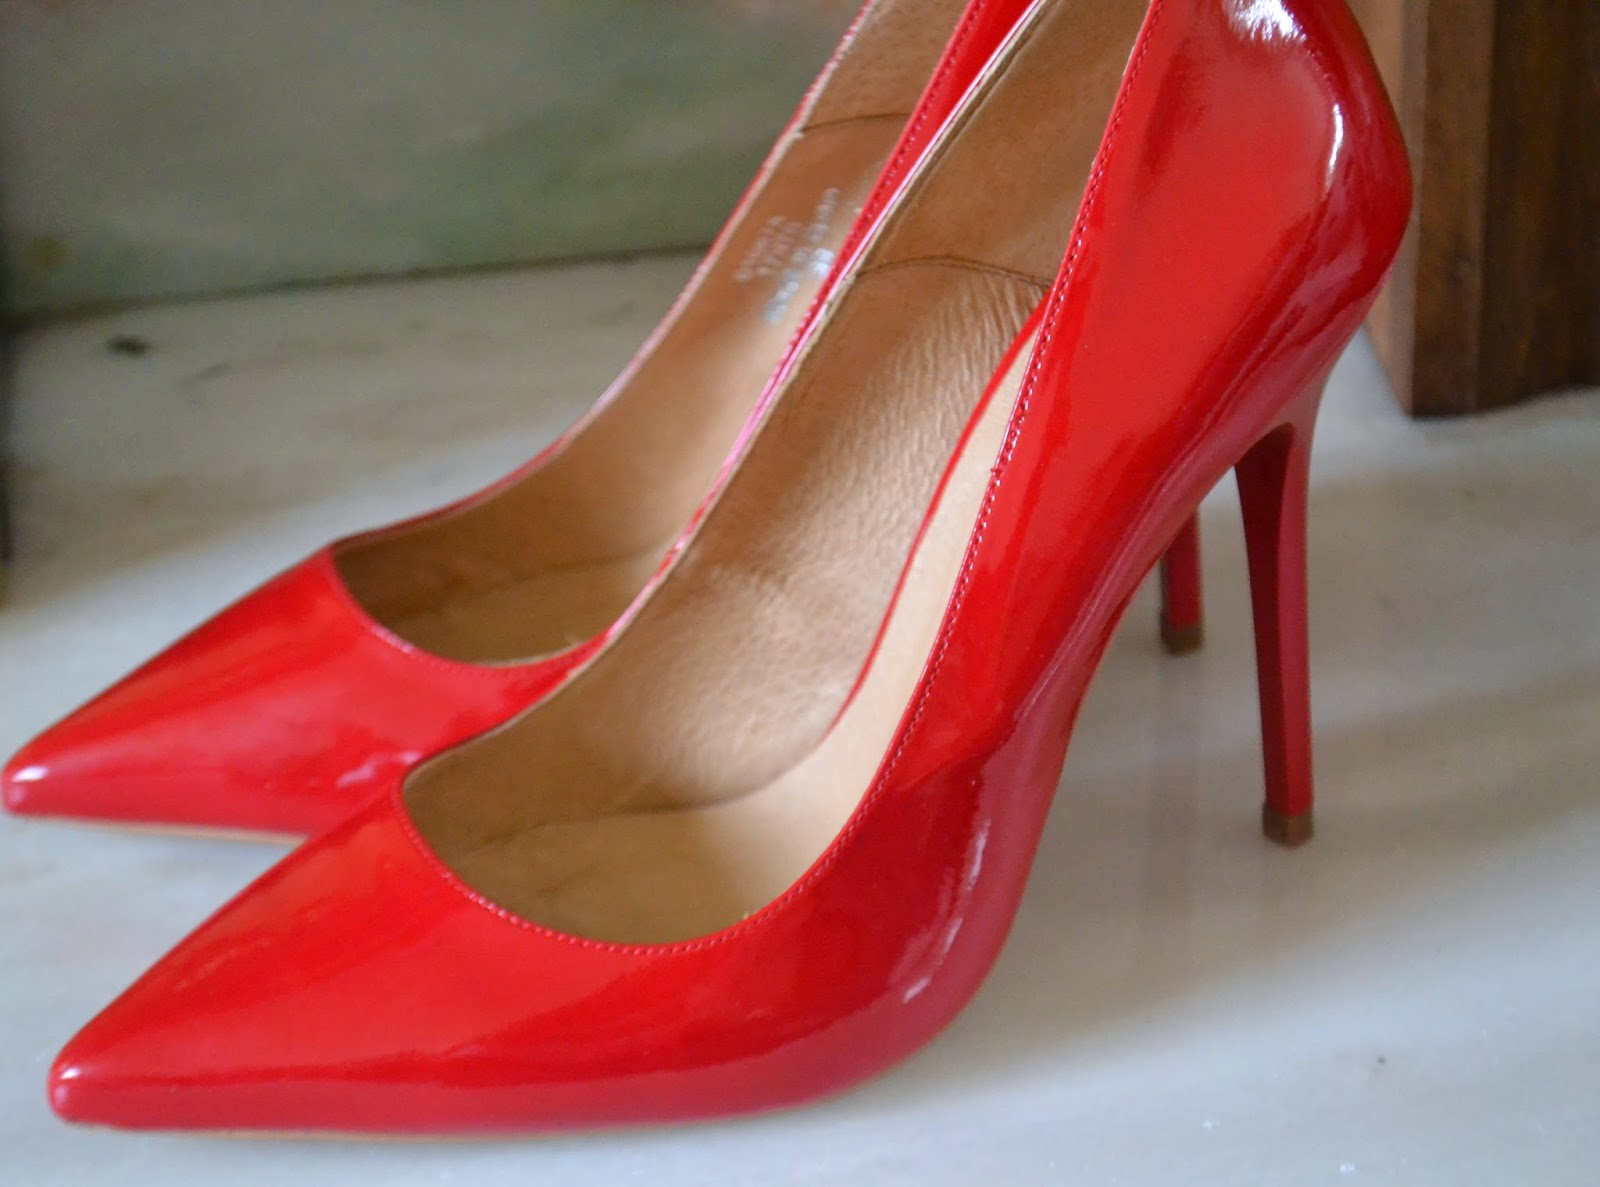 These Red Patent Heels From Office Are The Perfect Height For My Wedding Day And Feel Really Comfy To Wear They Look Simple Yet Glamorous